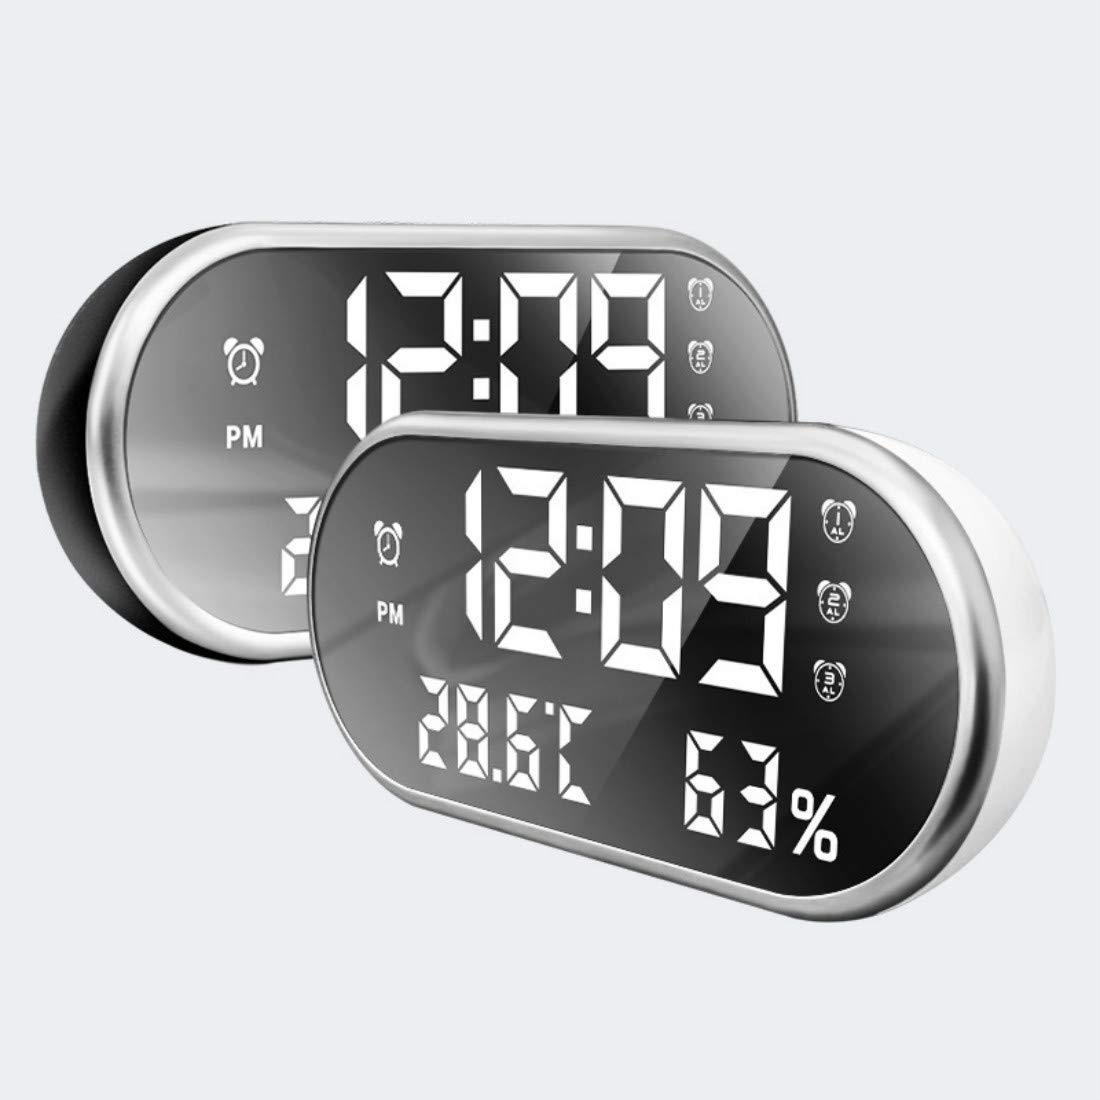 Gray Kaever R/éveil Num/érique,LED Digital Clock with USB Charger Port,R/éveil Temp/érature,LED Mirror Display,3 r/églage de laLuminosit/é,Recharge USB pour t/él/éphone